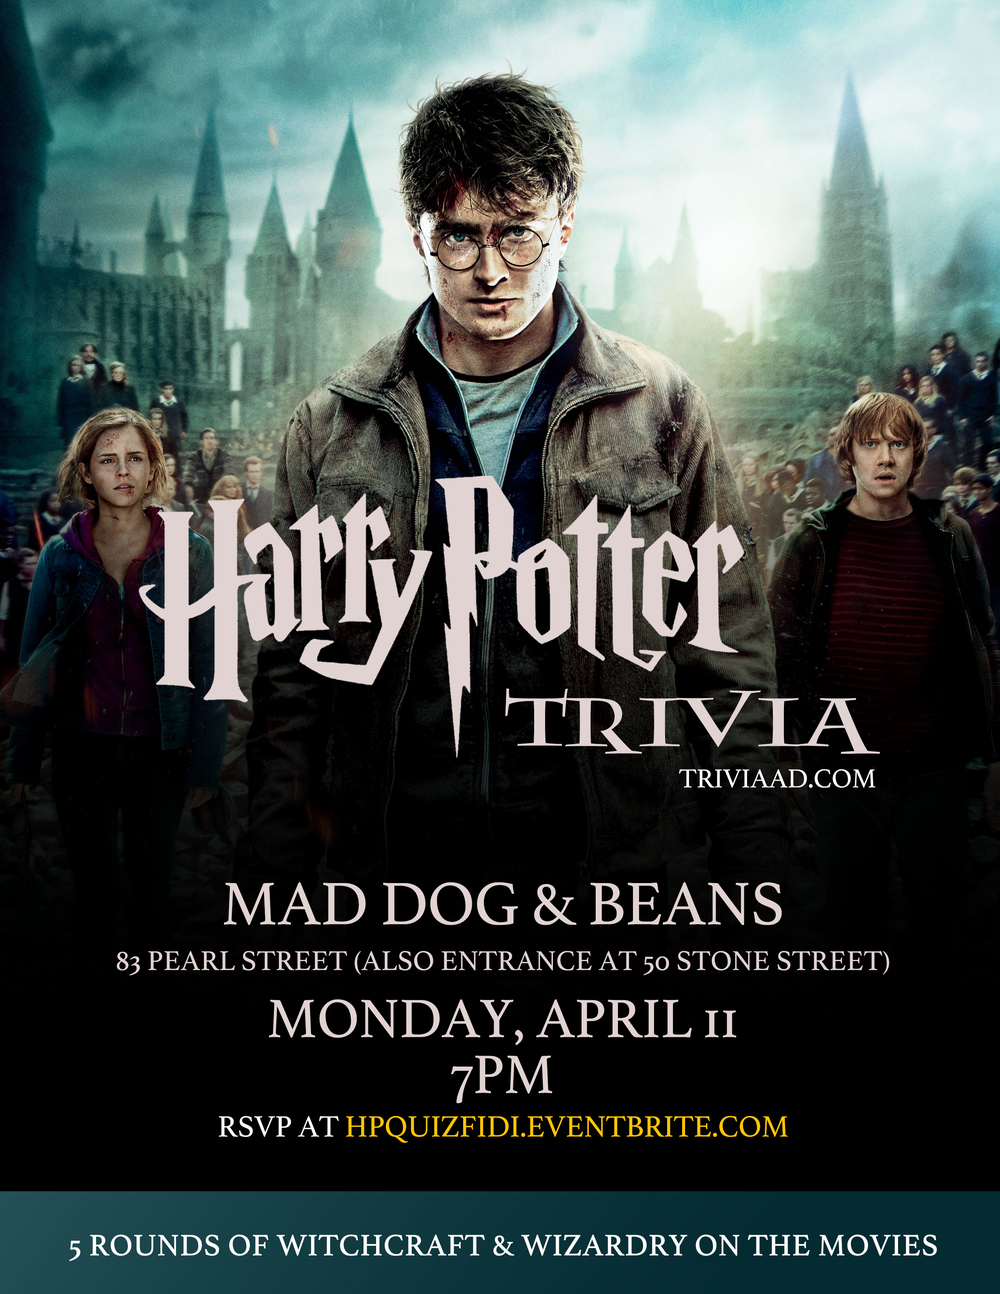 Harry Potter Flyer.jpg